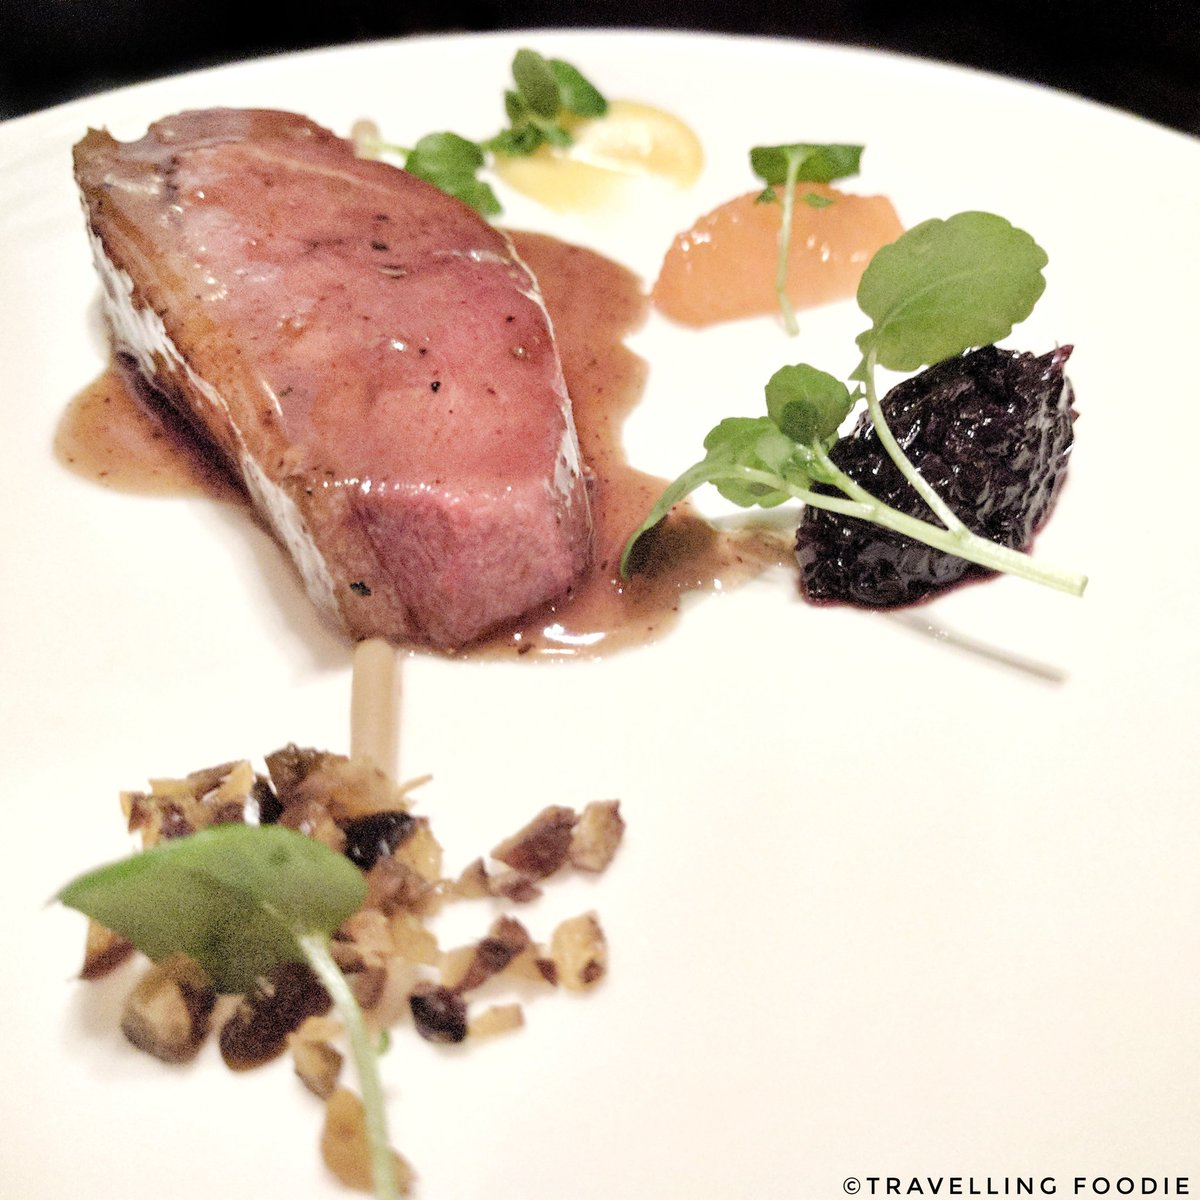 Traveling Foodie Eats Muscovy Duck, Cara Cara Orange, Coco Nib, Chestnuts at Alo Restaurant in Toronto, Ontario, Canada